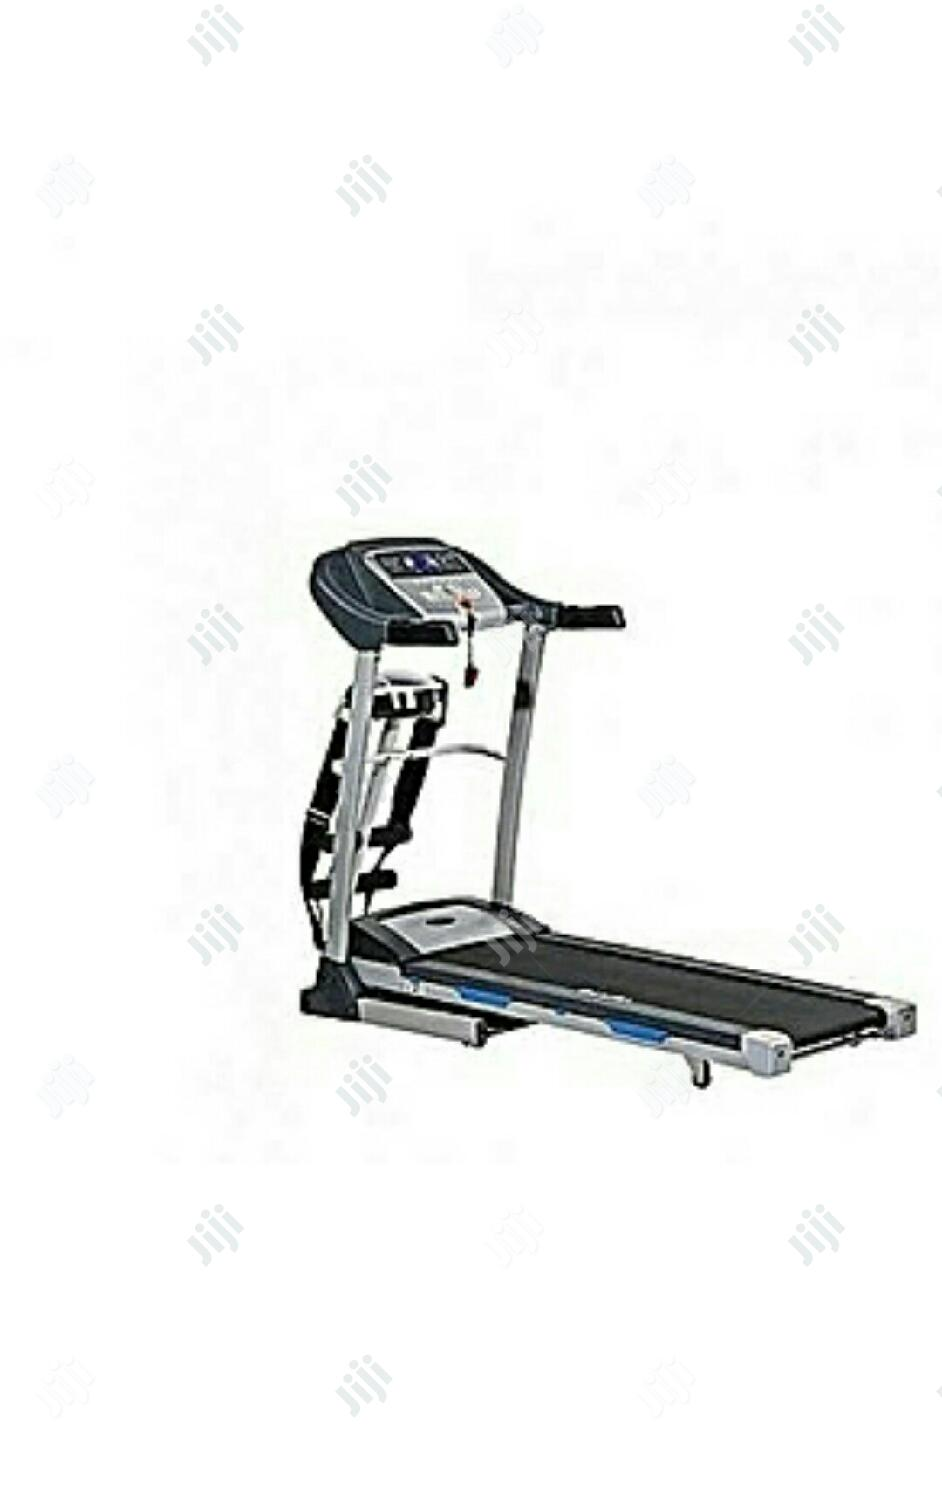 American Fitness Treadmill 3hp With Massage,Situp and Mp3